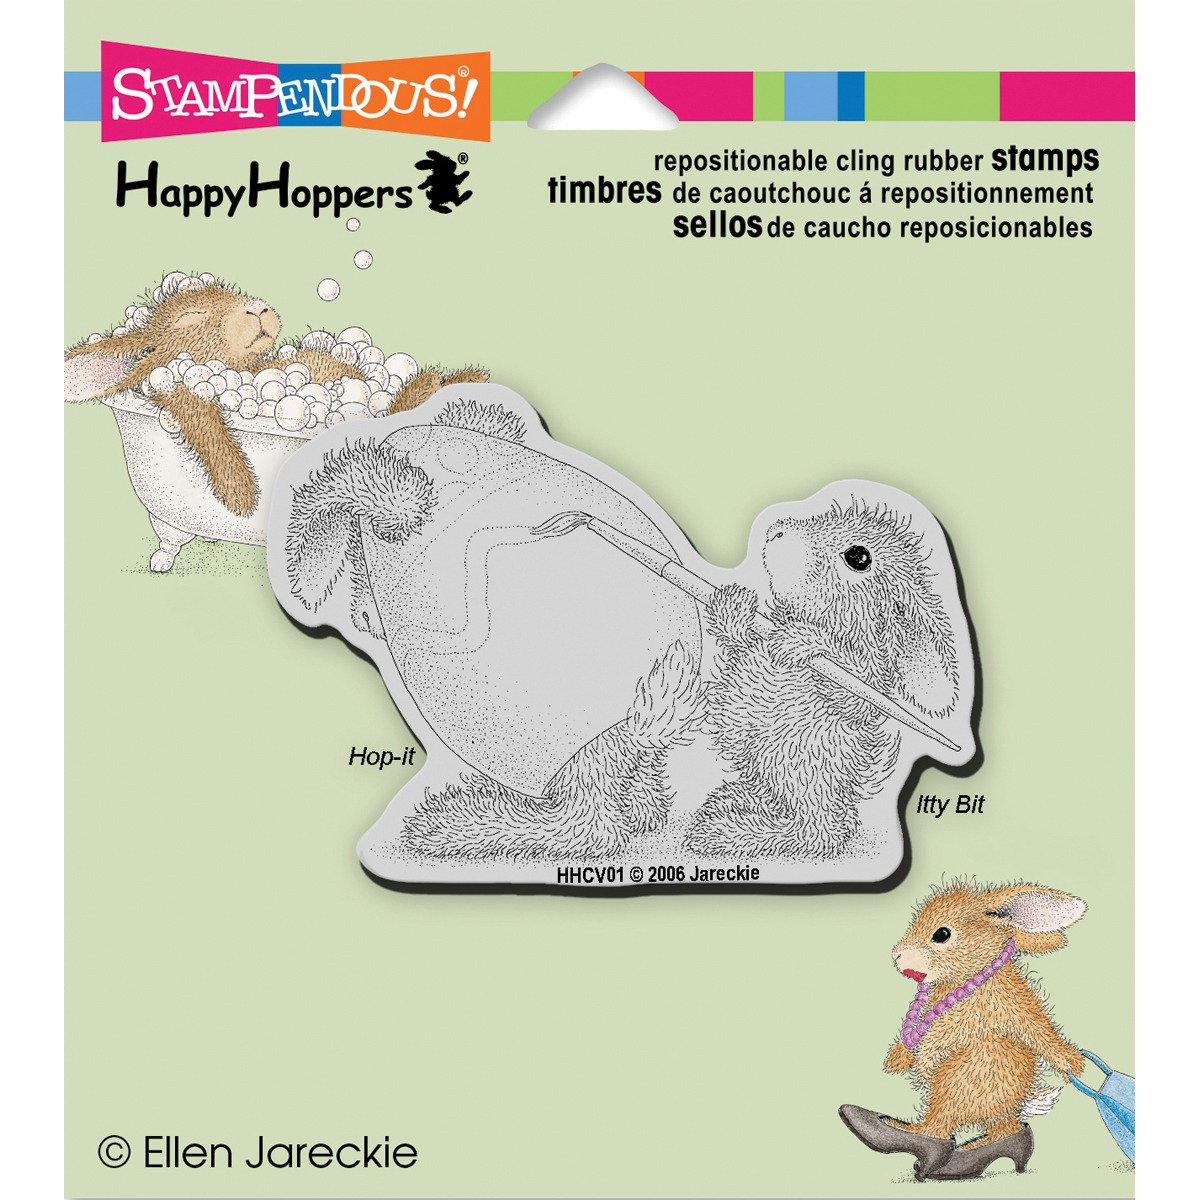 Stampendous HappyHoppers Cling Stamp Easter Bunny